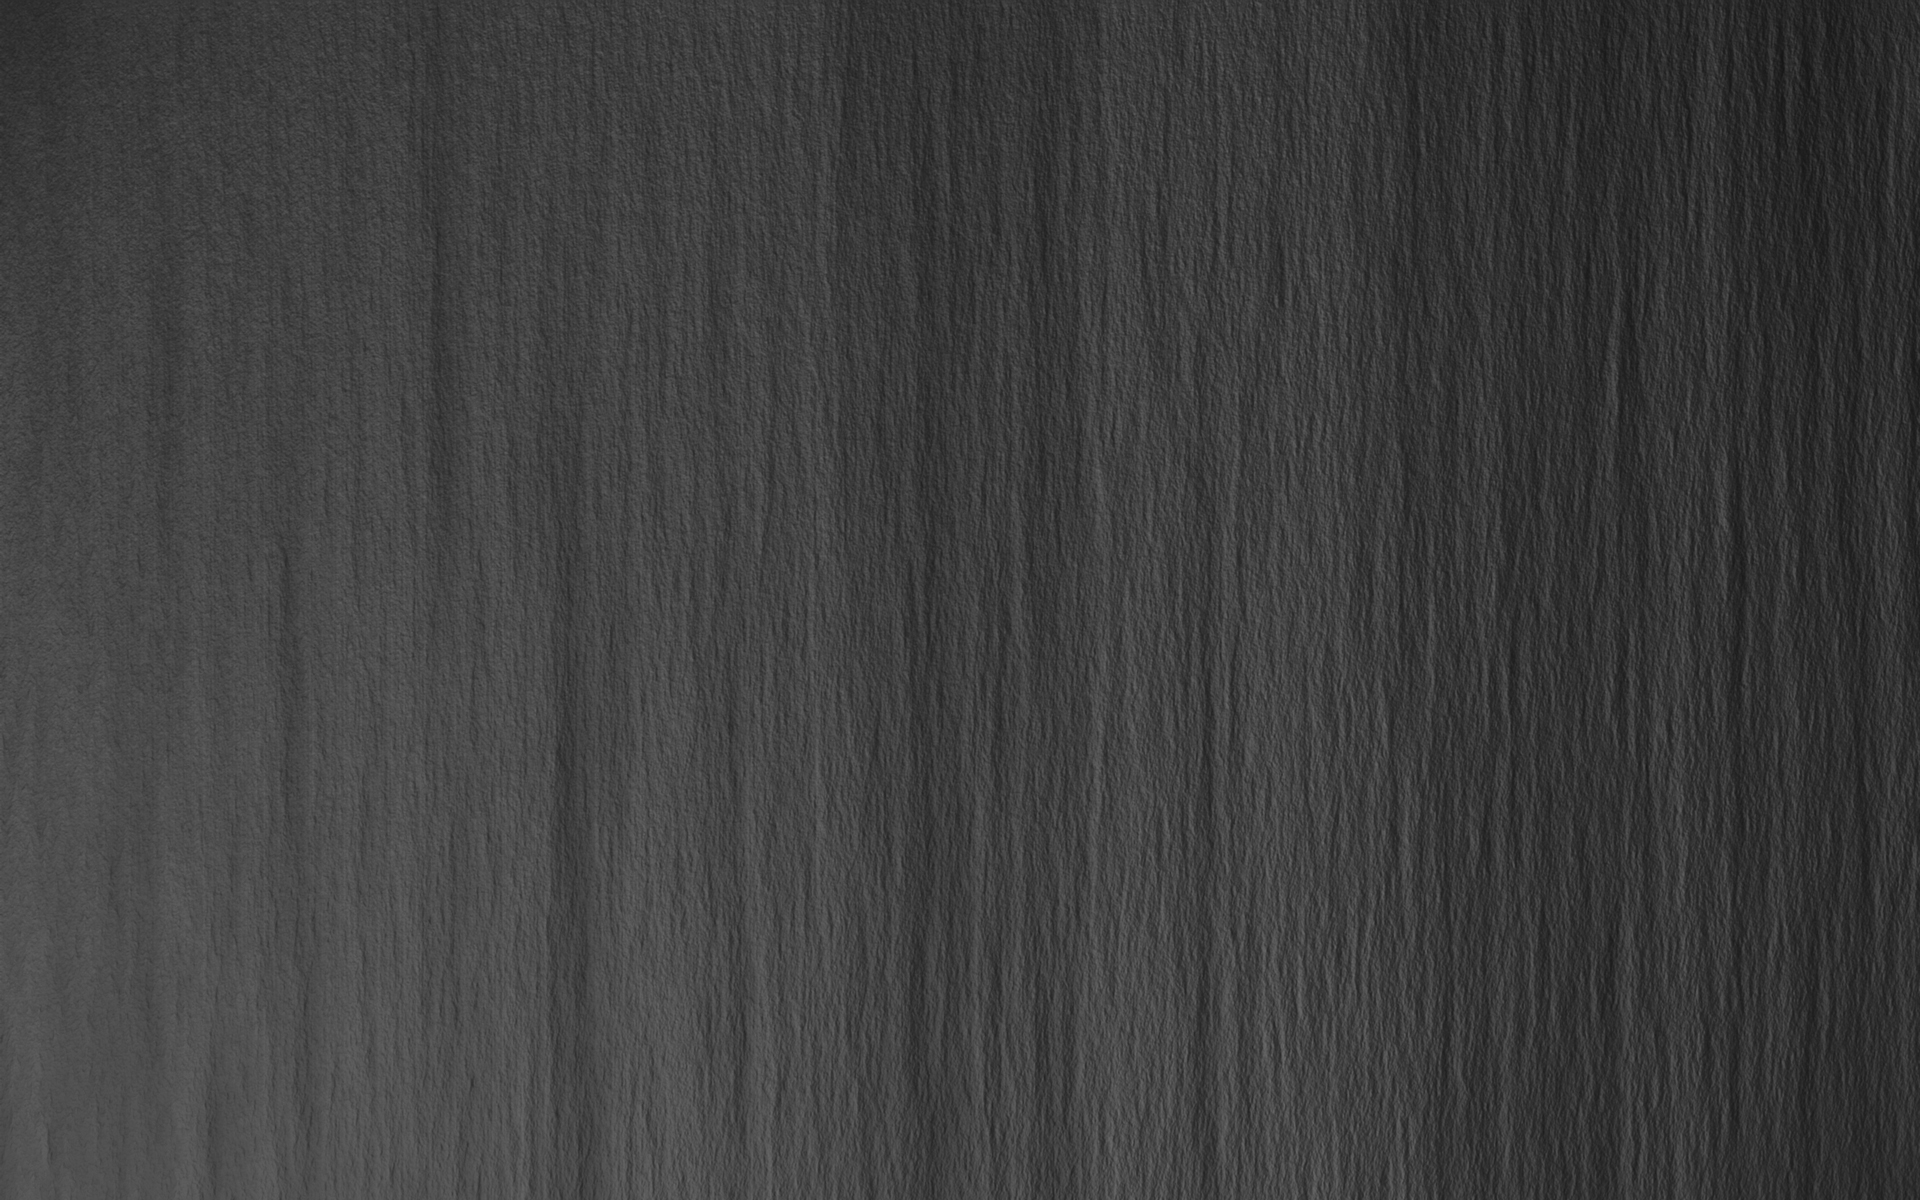 Backgrounds For Wall Grey Backgrounds | www.8backgrounds.com